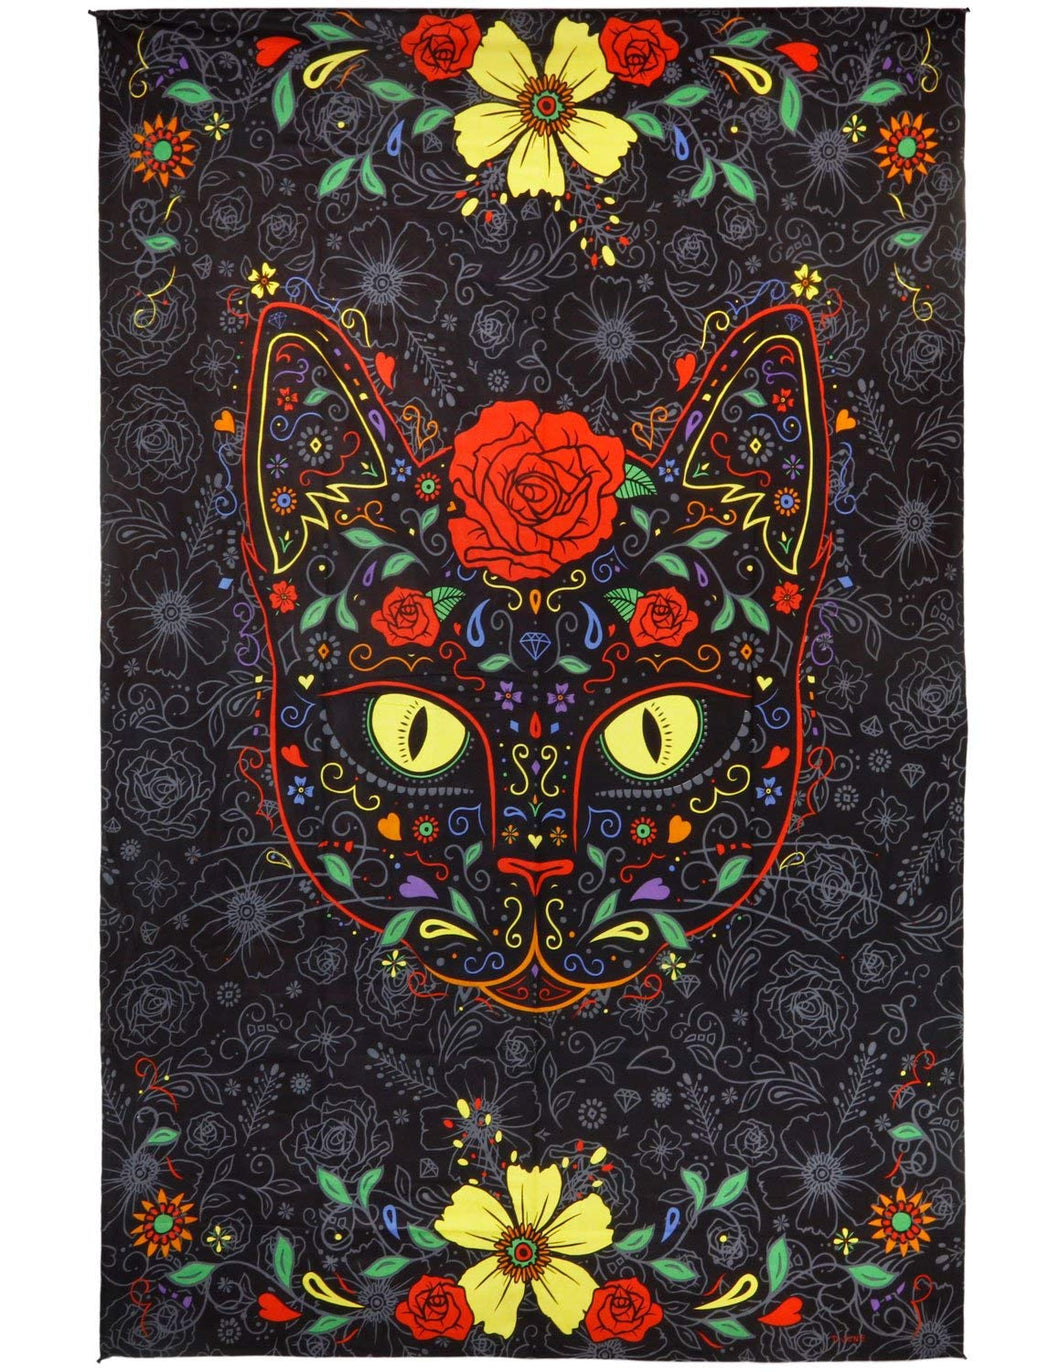 Artistically Designed Cat Print Tapestry